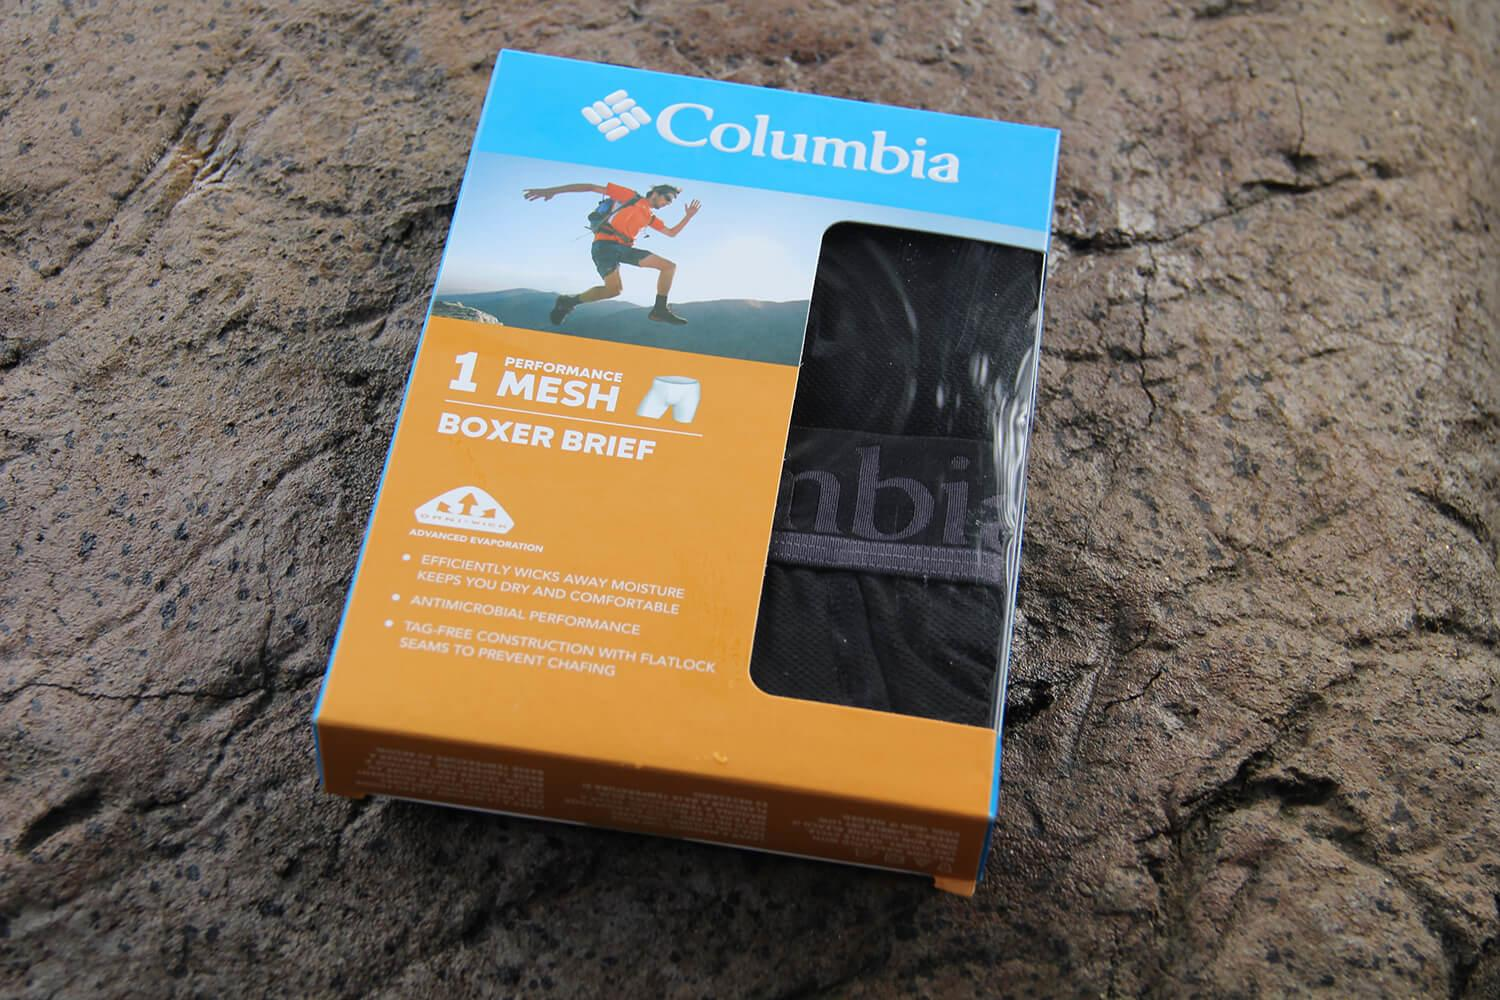 Columbia-Performance-Mesh-Brief-box-product-review